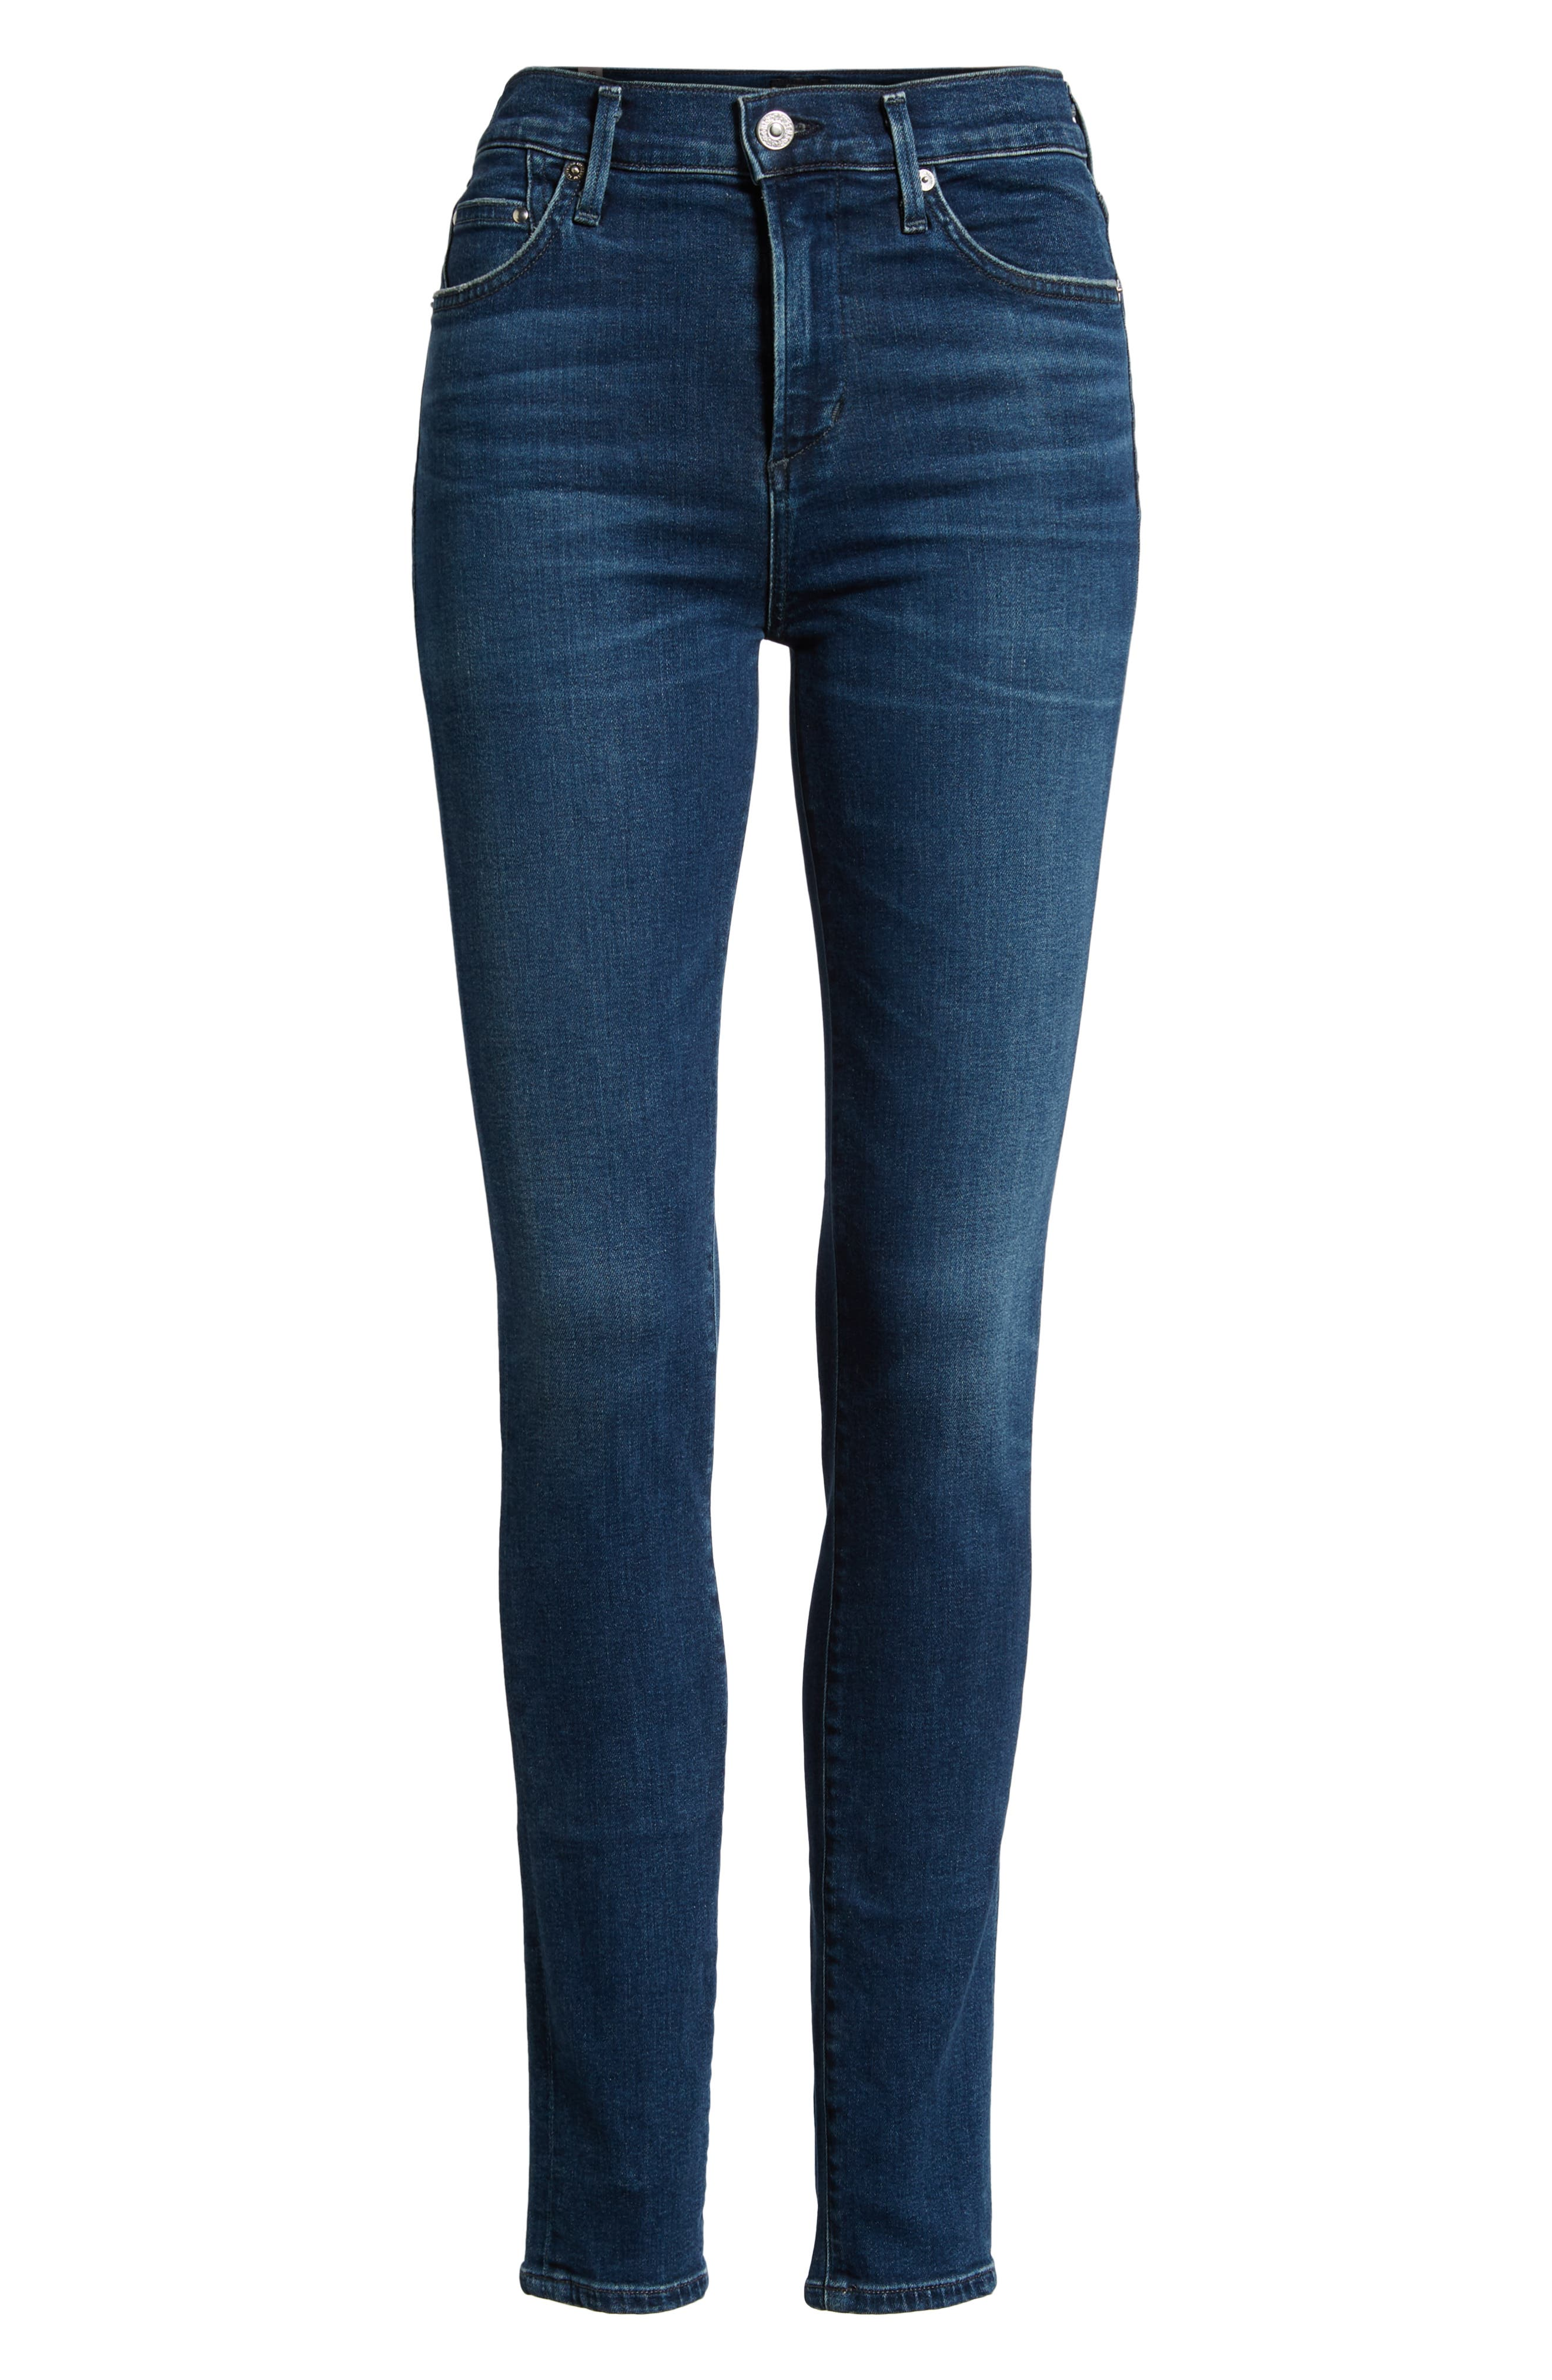 CITIZENS OF HUMANITY,                             Rocket Skinny Jeans,                             Alternate thumbnail 7, color,                             GLORY